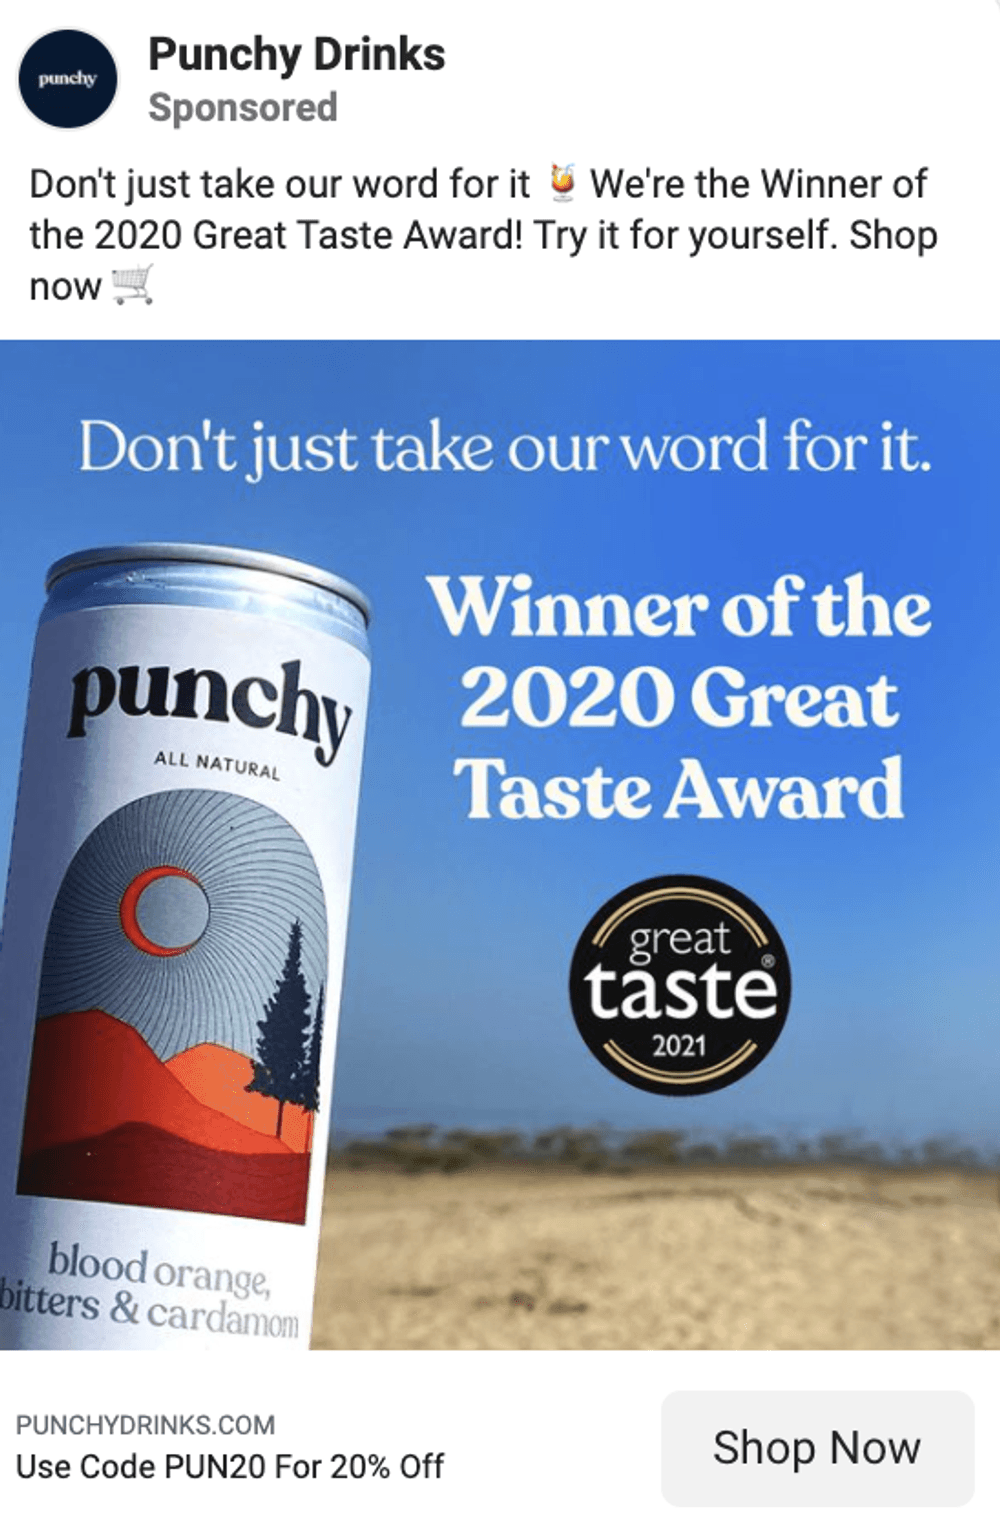 Facebook ad copy examples food & drinks brand